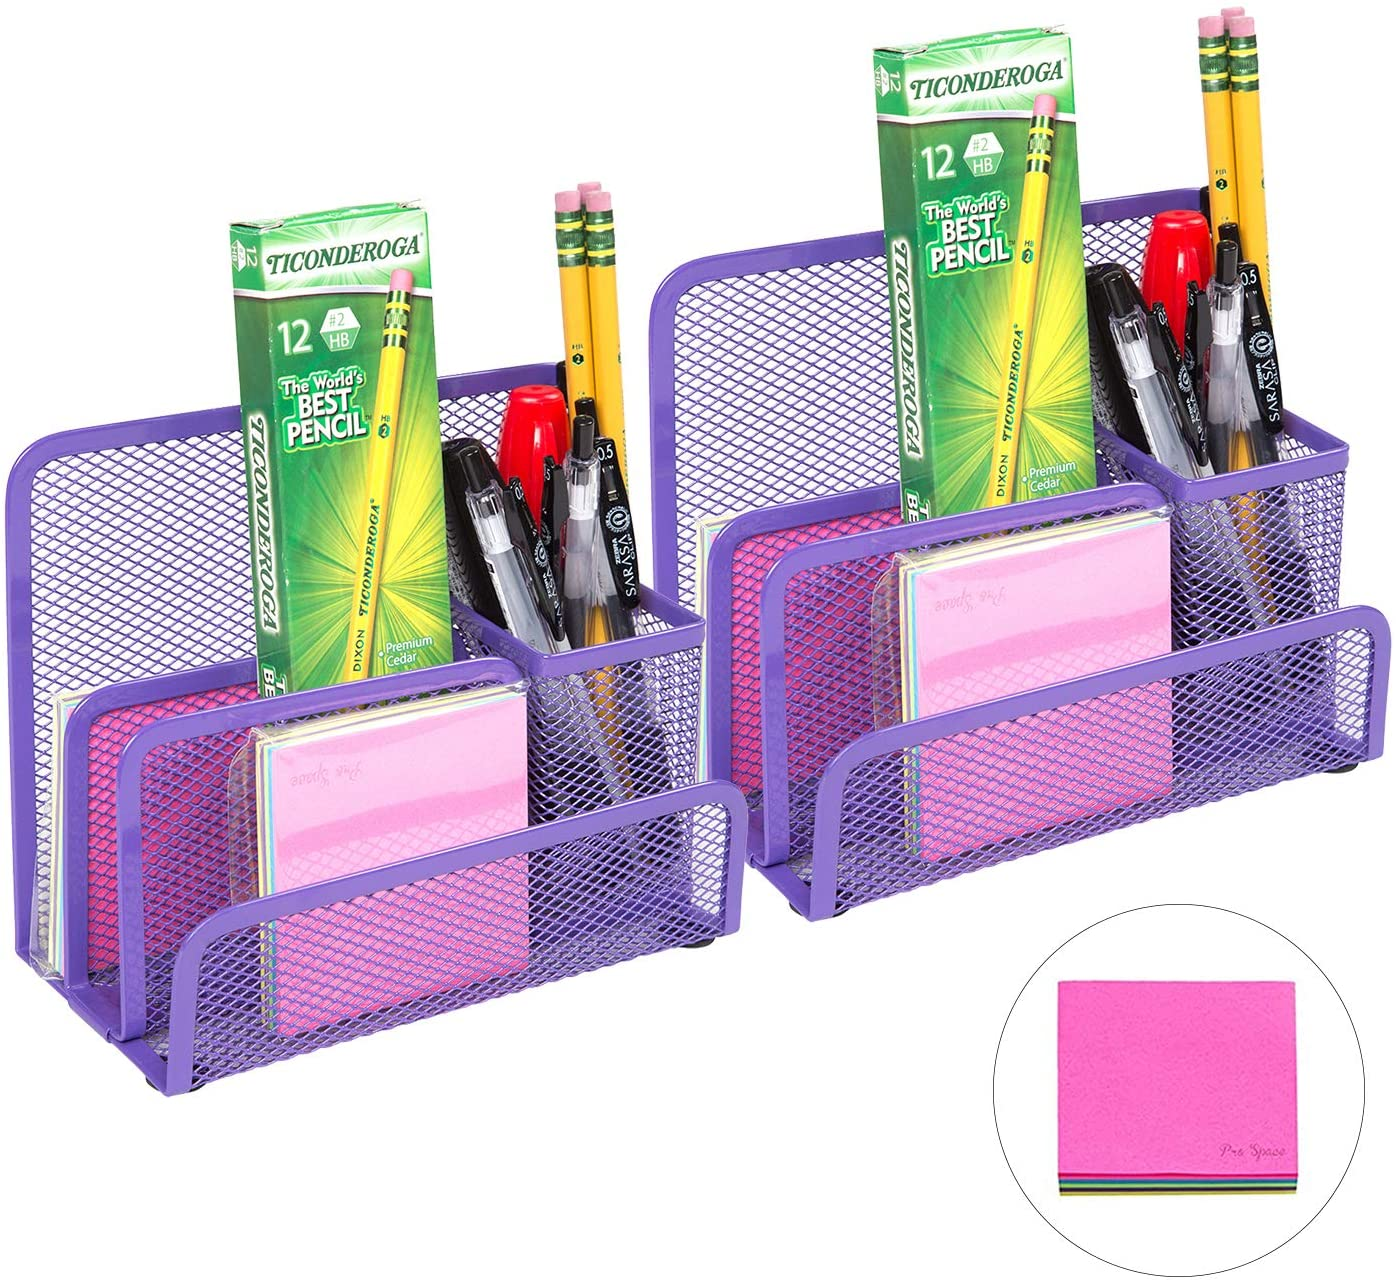 Pro Space Mesh Pen Holder Metal Pencil Holder,Business Card Holder for Desk Office Pen Organizer,A Note for Free,6.93.45.5 (2 Packs Purple)